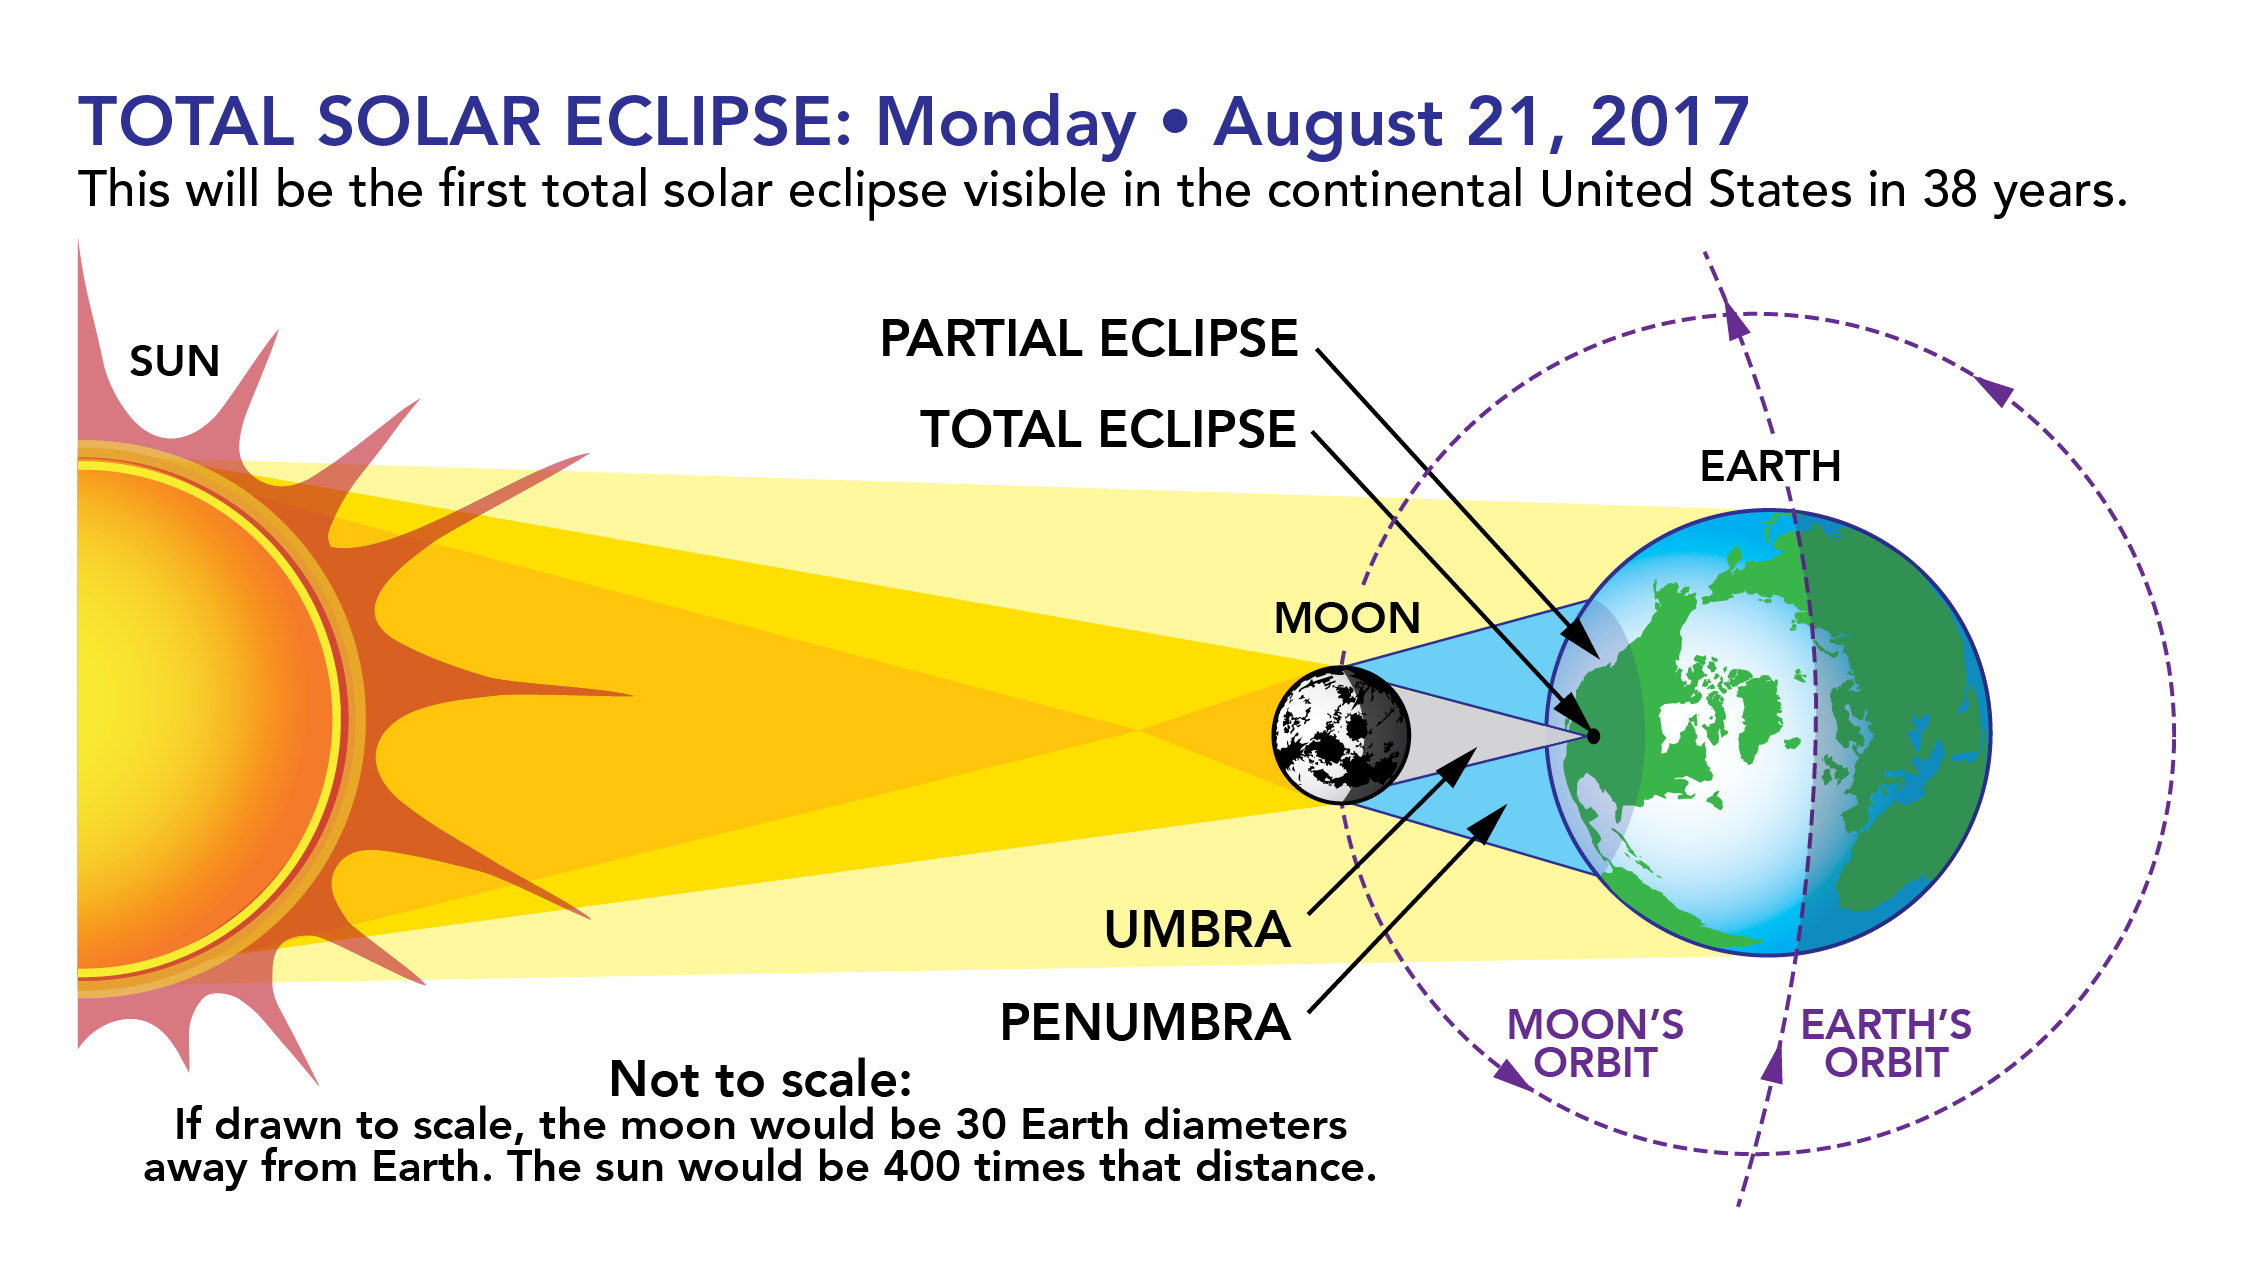 Eclipse graphic. Credit: NASA.